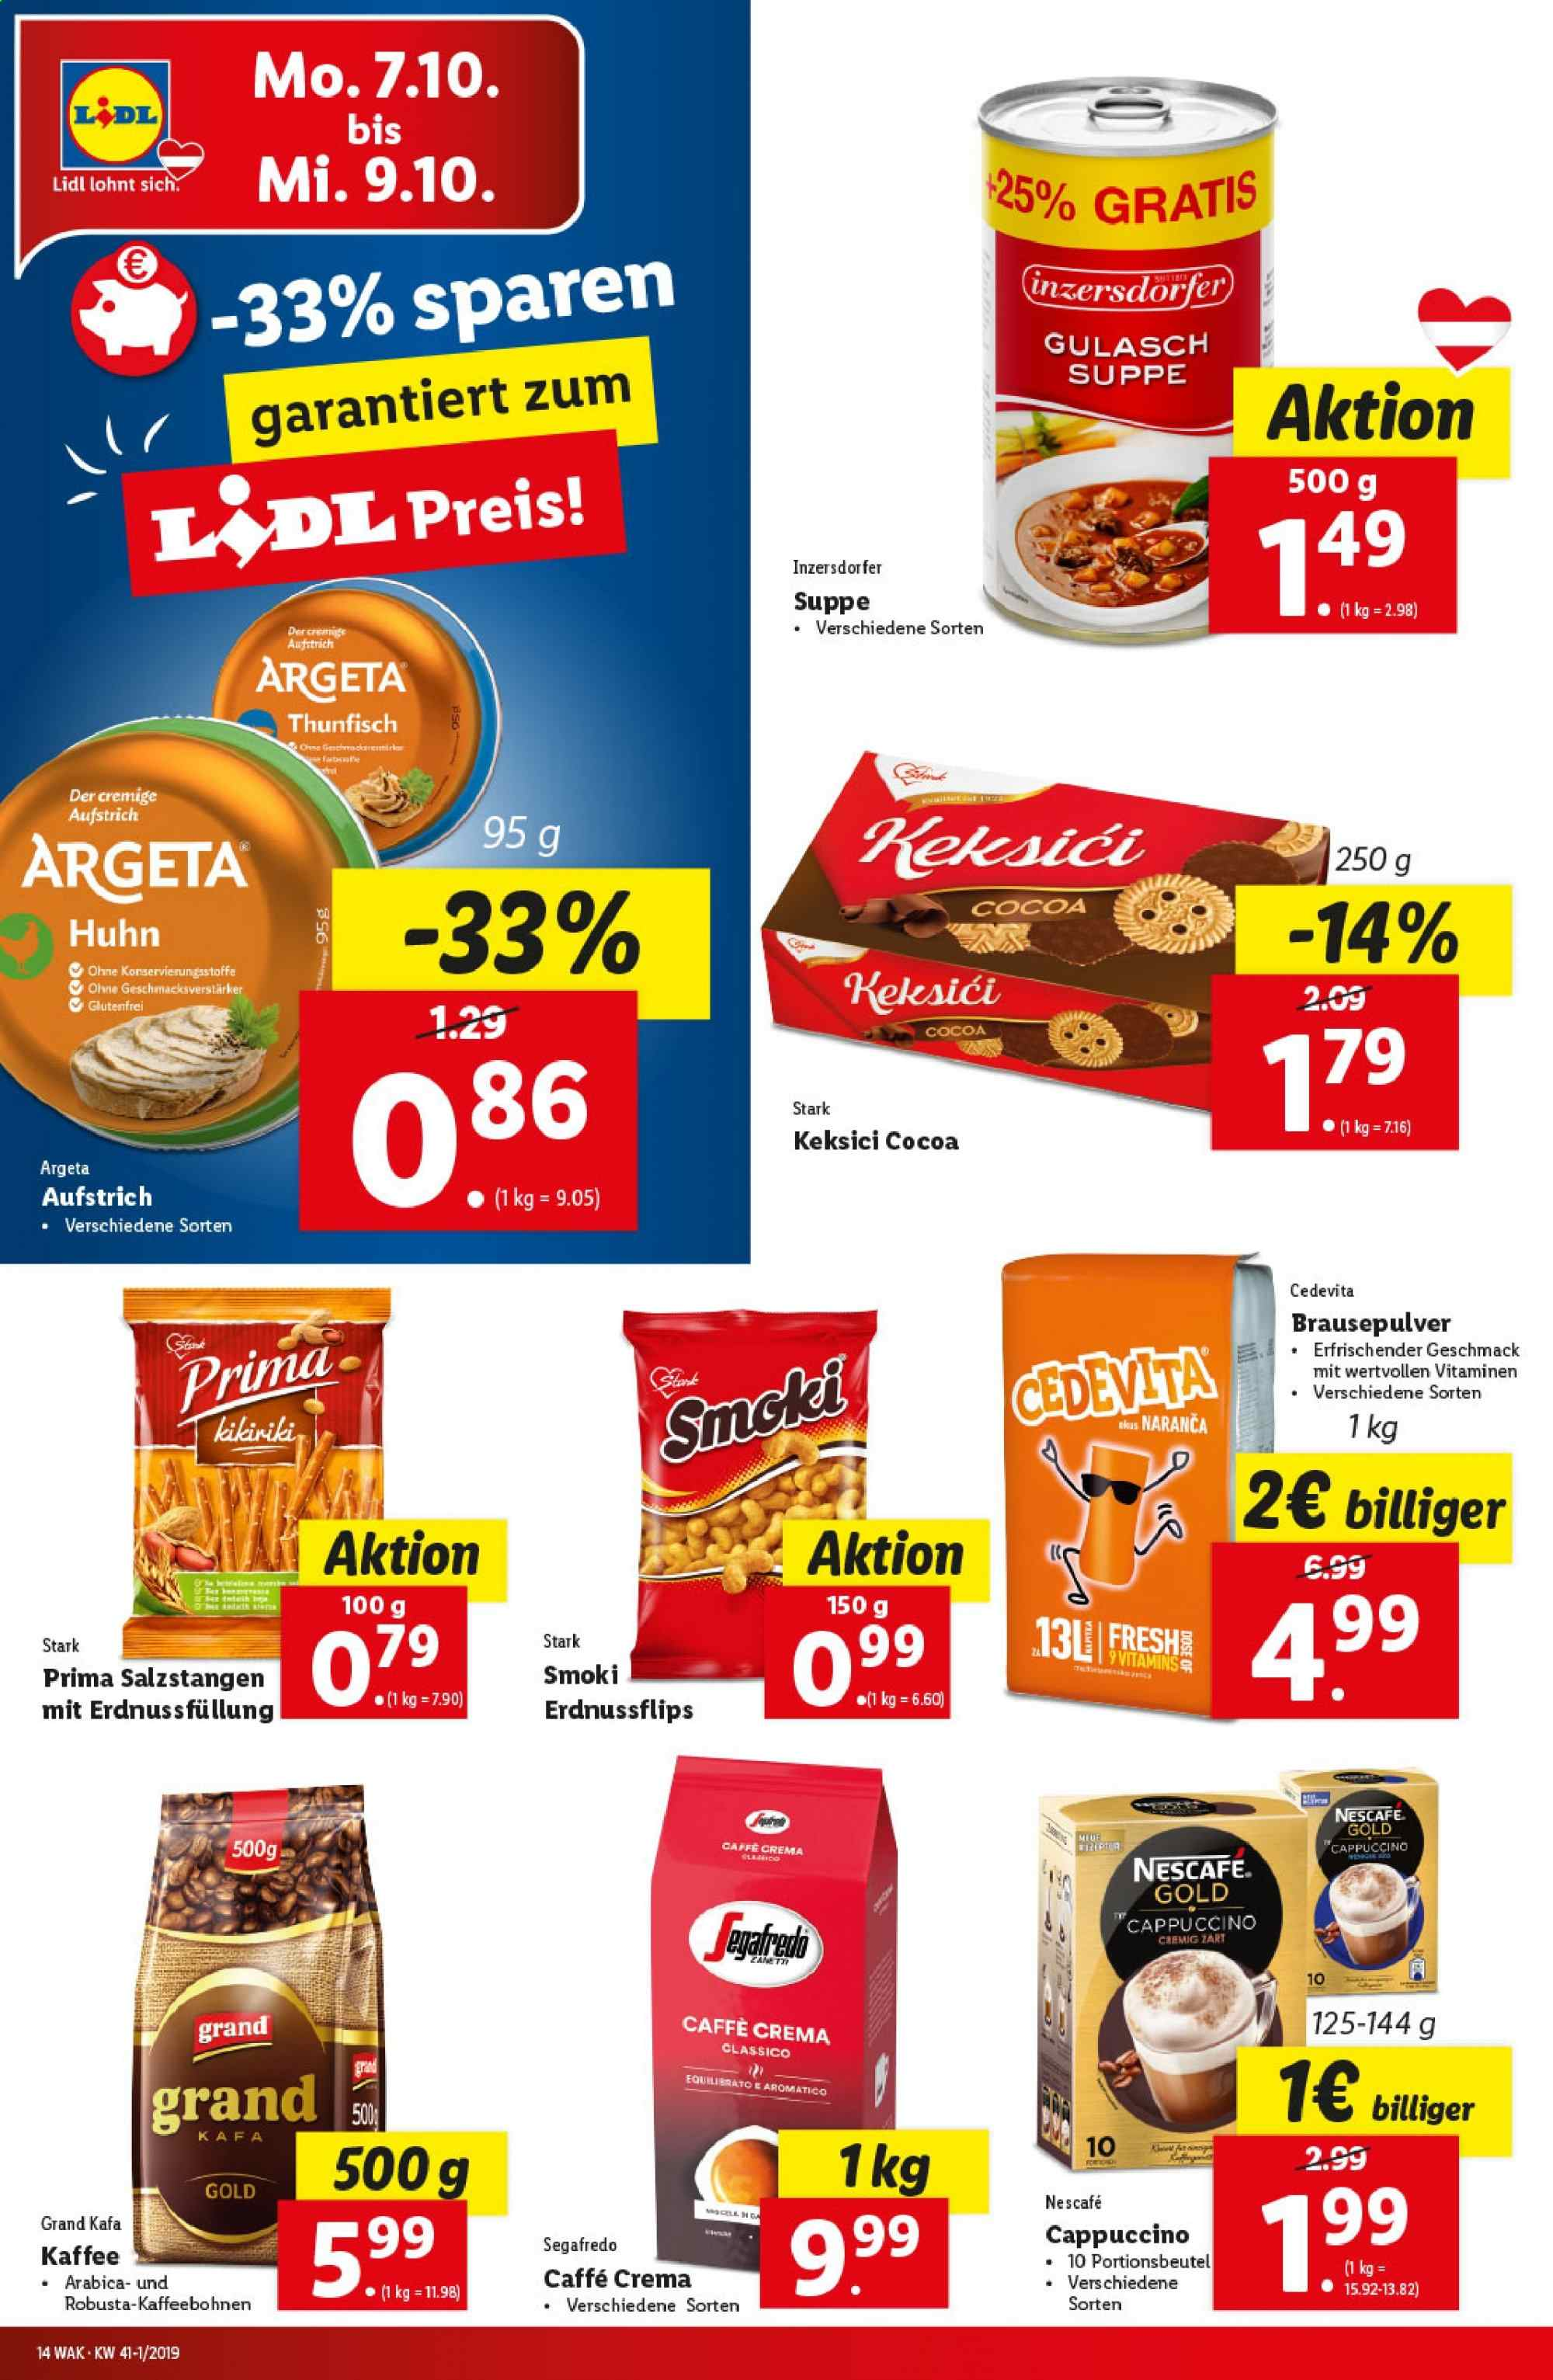 Angebote Lidl - 3.10.2019 - 9.10.2019. Seite 14.